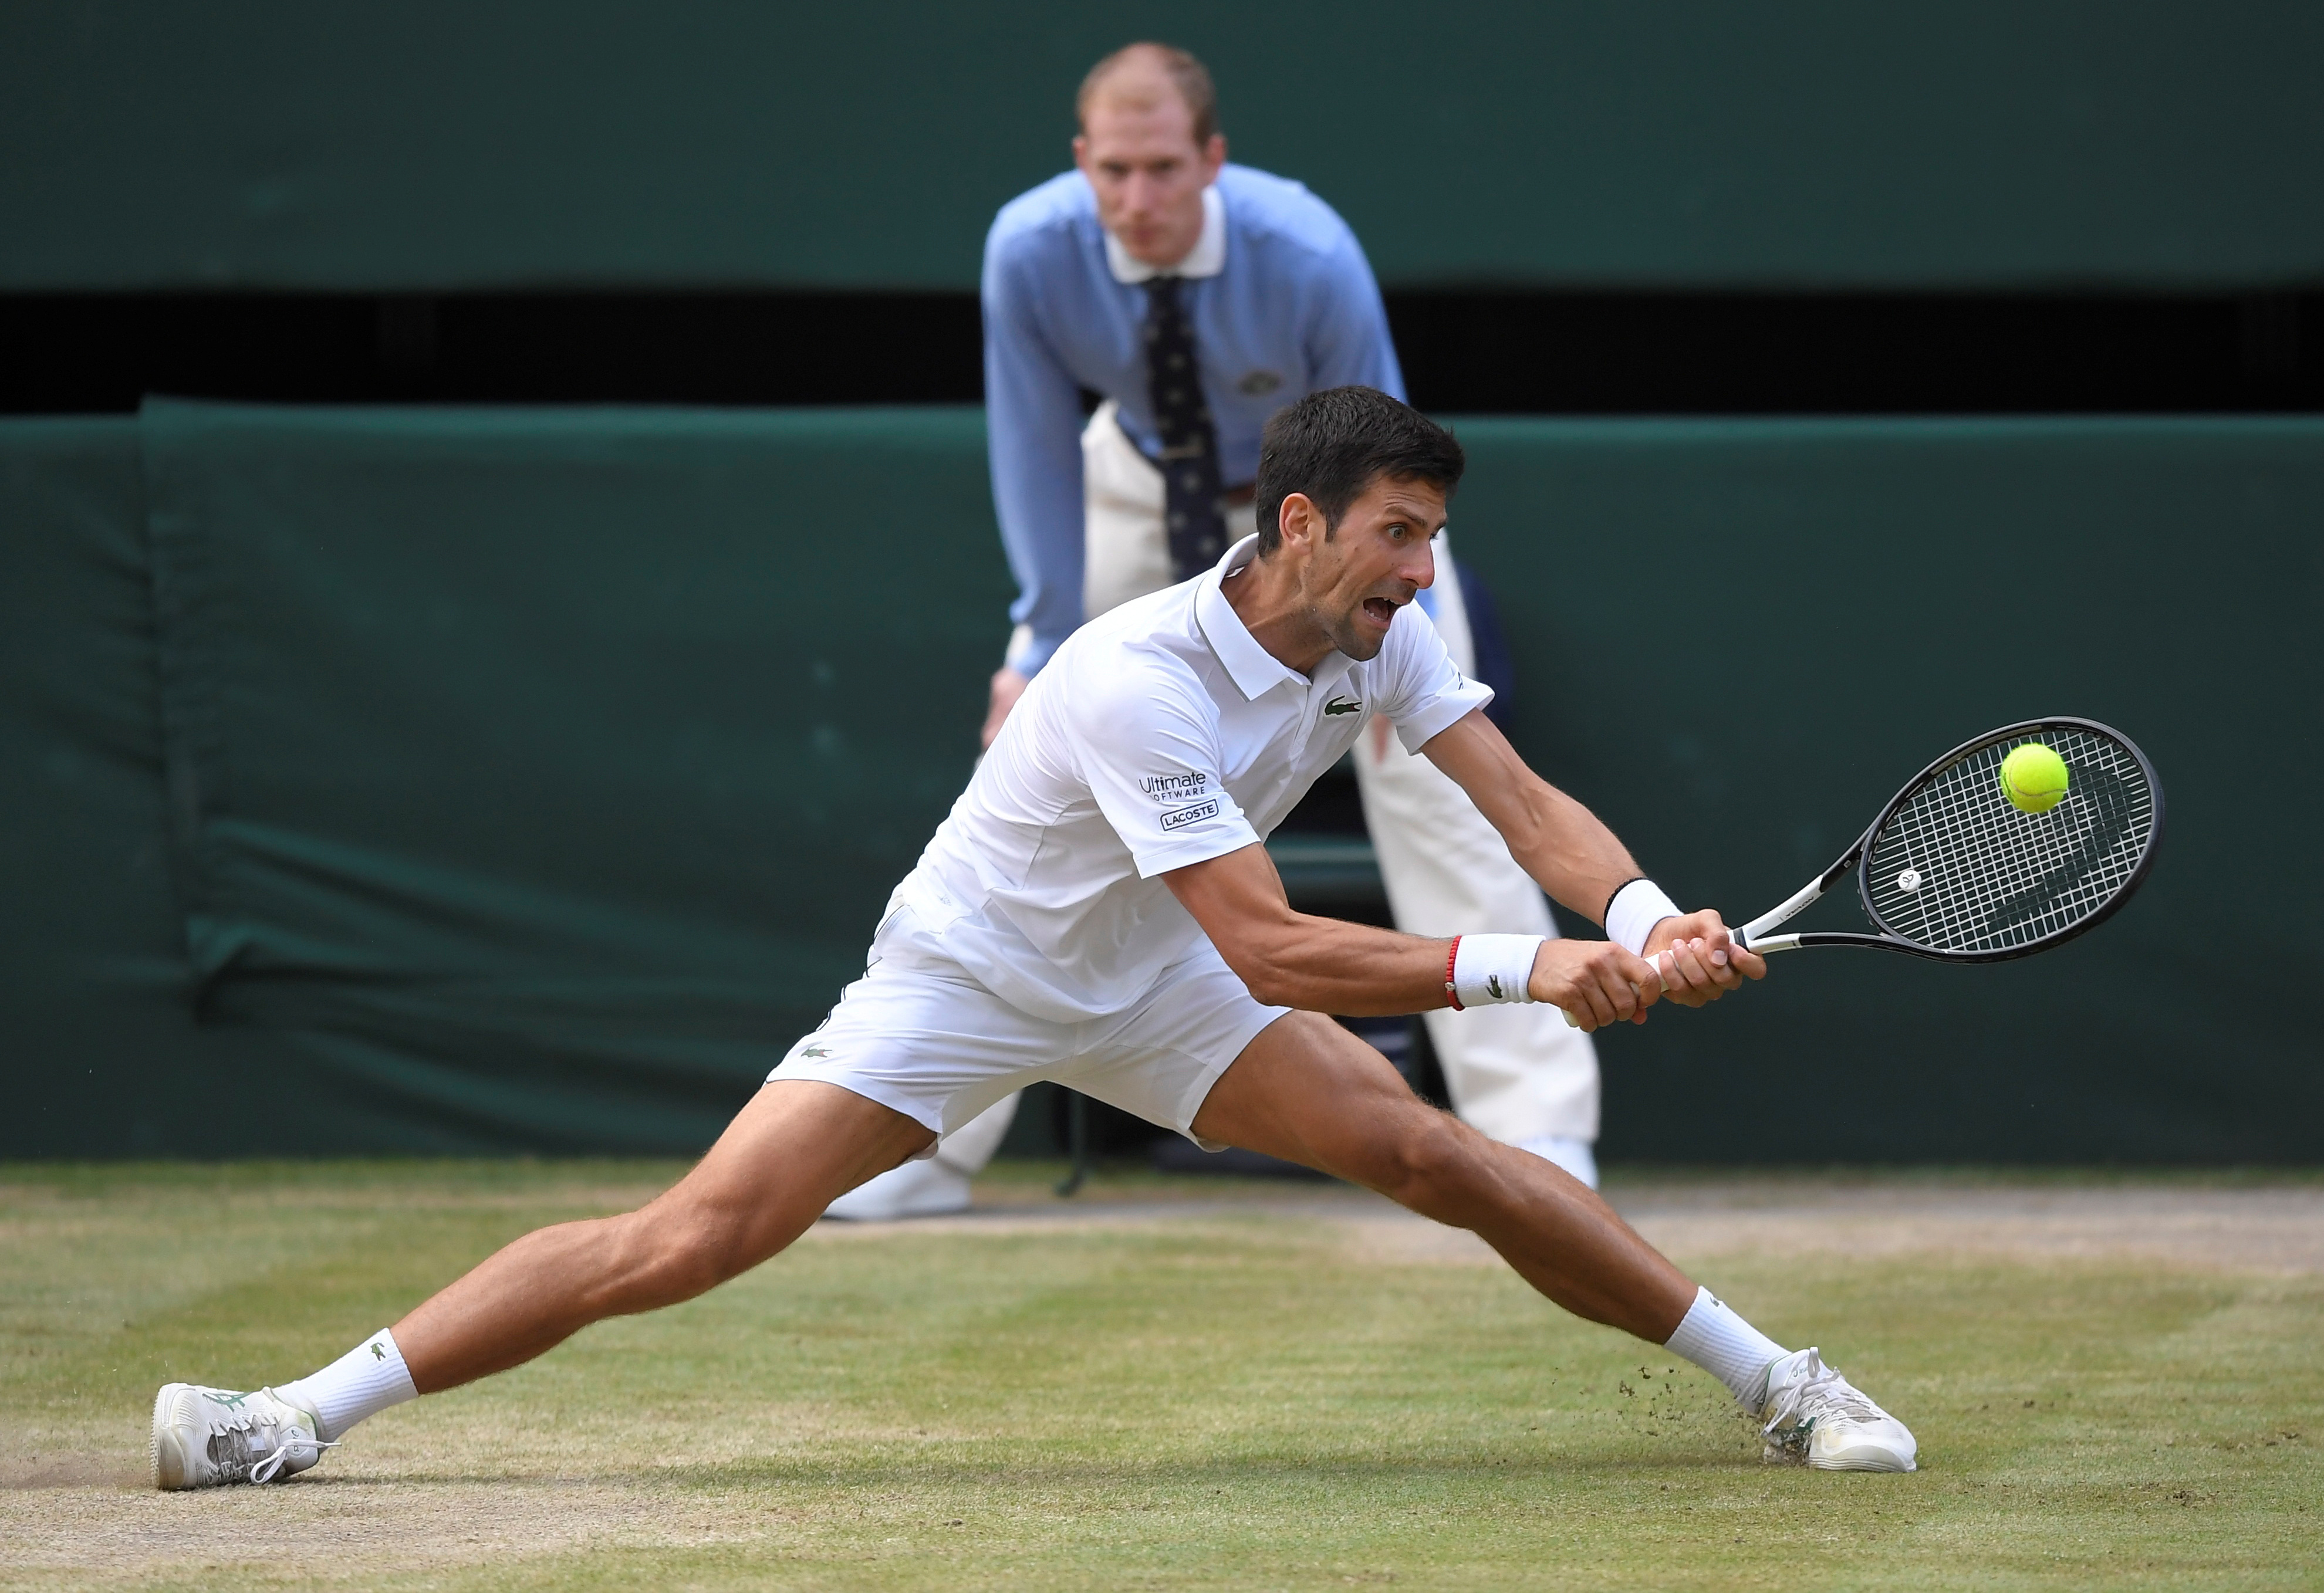 Serbia's Novak Djokovic in action during the final against Switzerland's Roger Federer. Photo: Reuters